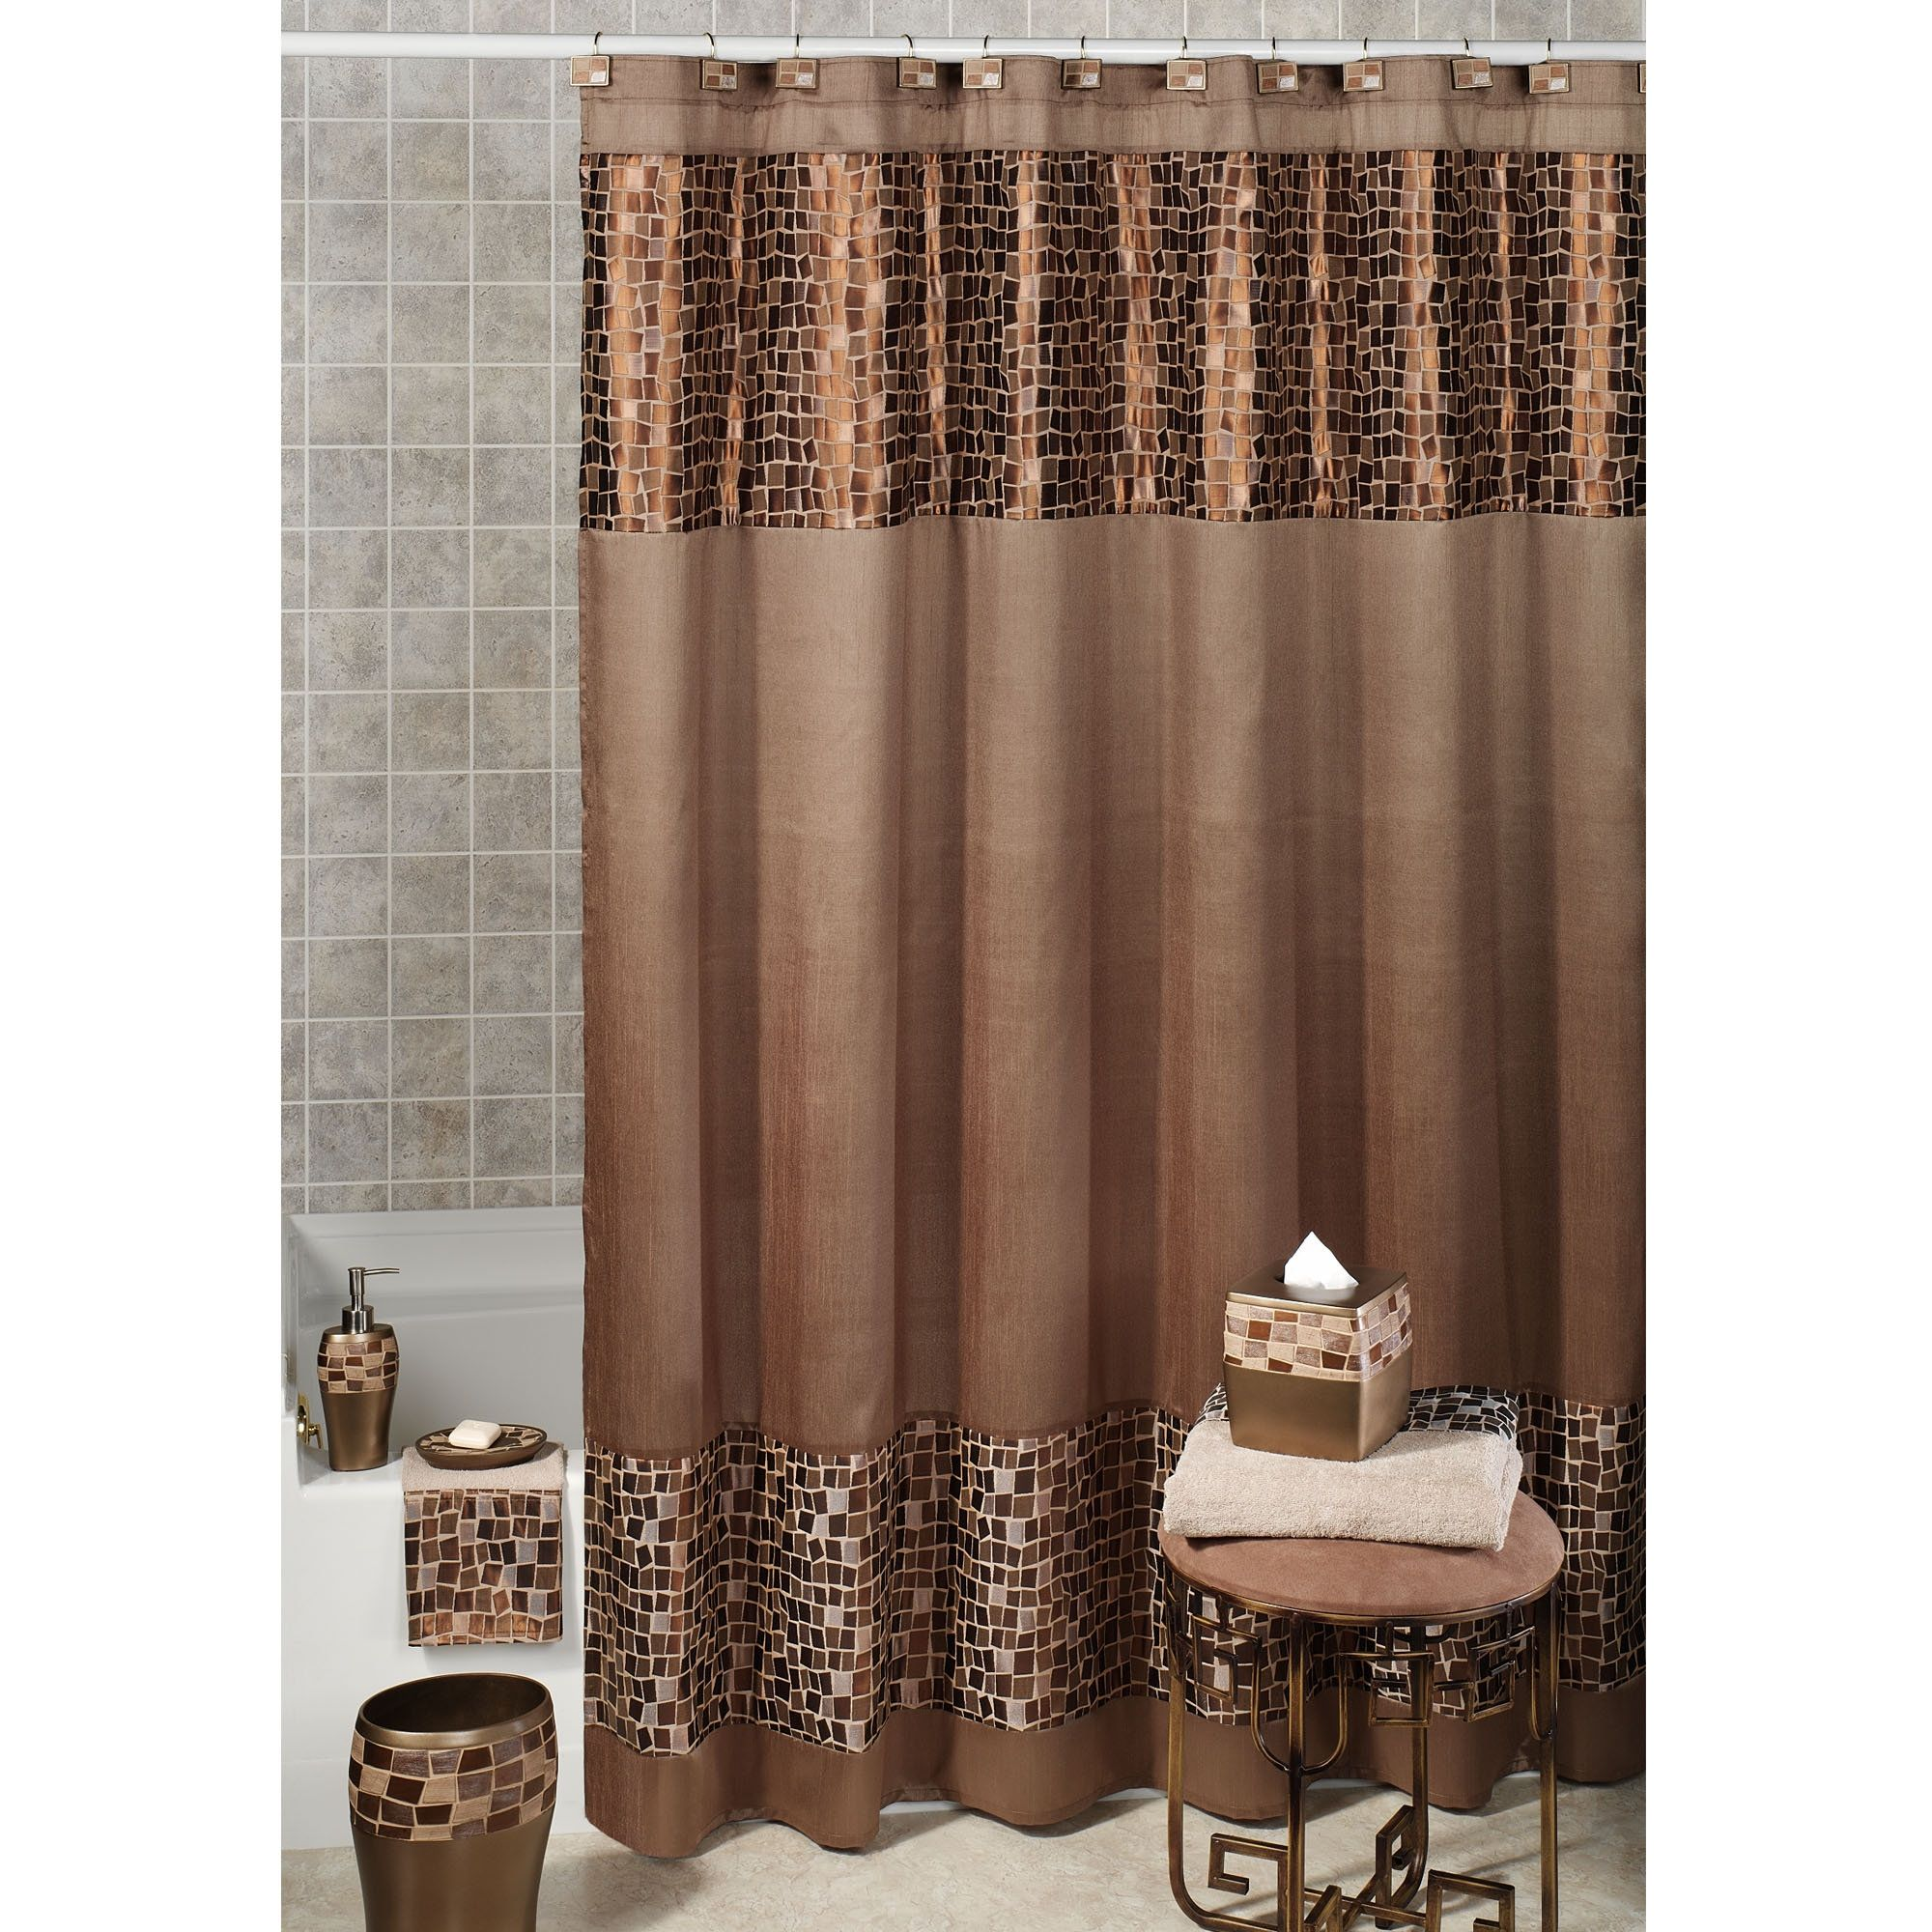 Purple And Gold Shower Curtain   Shower Curtain   Pinterest   Gold ...